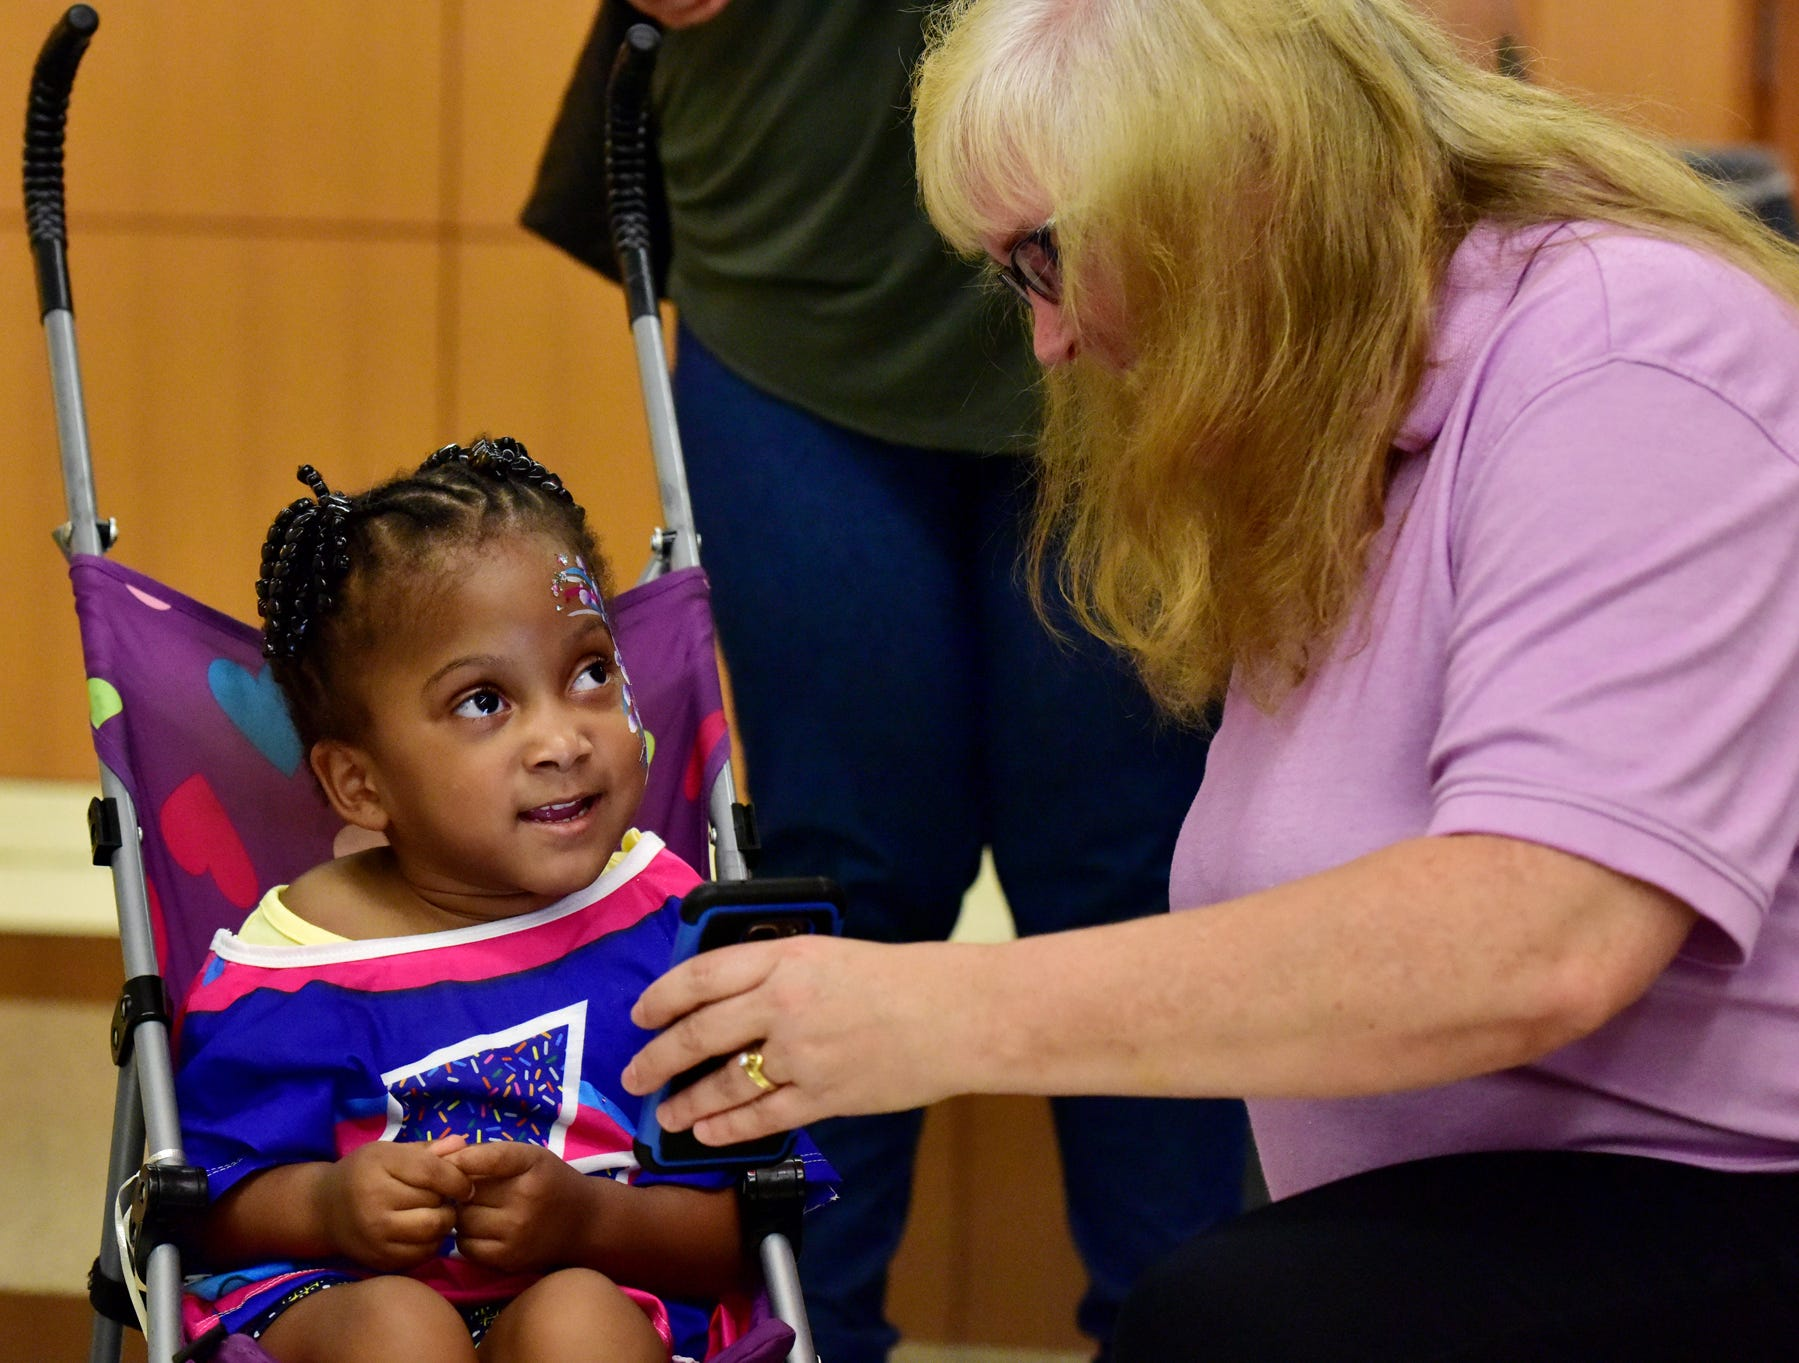 Novah Mac, 4, is shown a picture of herself during a Superhero Kids' Fashion Show held by the Dunkin' Donuts Joy in Childhood Foundation at Greenville Memorial Hospital on Thursday, August 2, 2018.